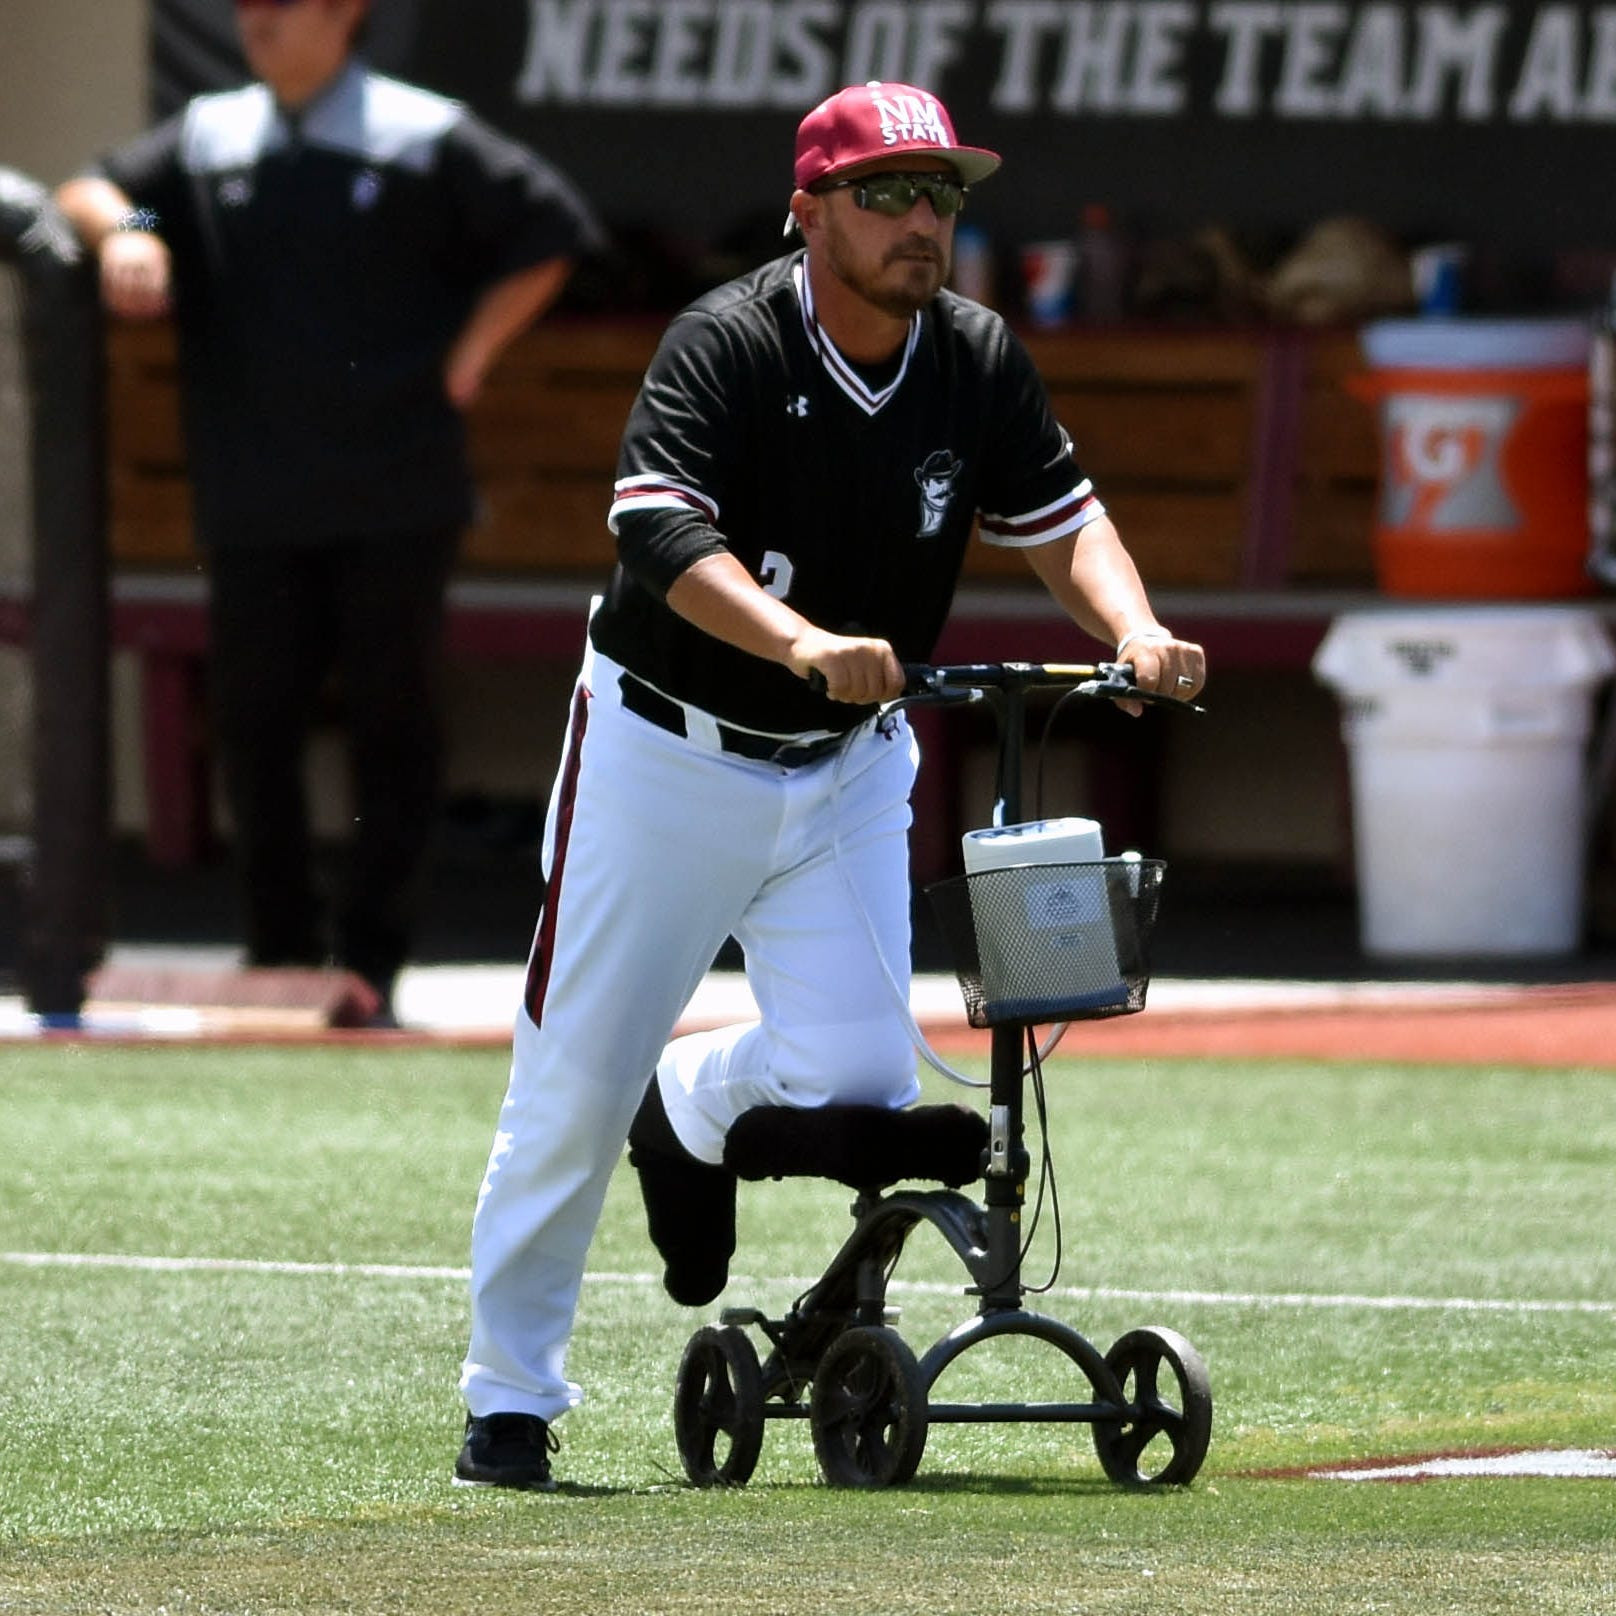 Brian Green manages pain, Aggies while leading New Mexico State baseball to WAC No. 1 seed